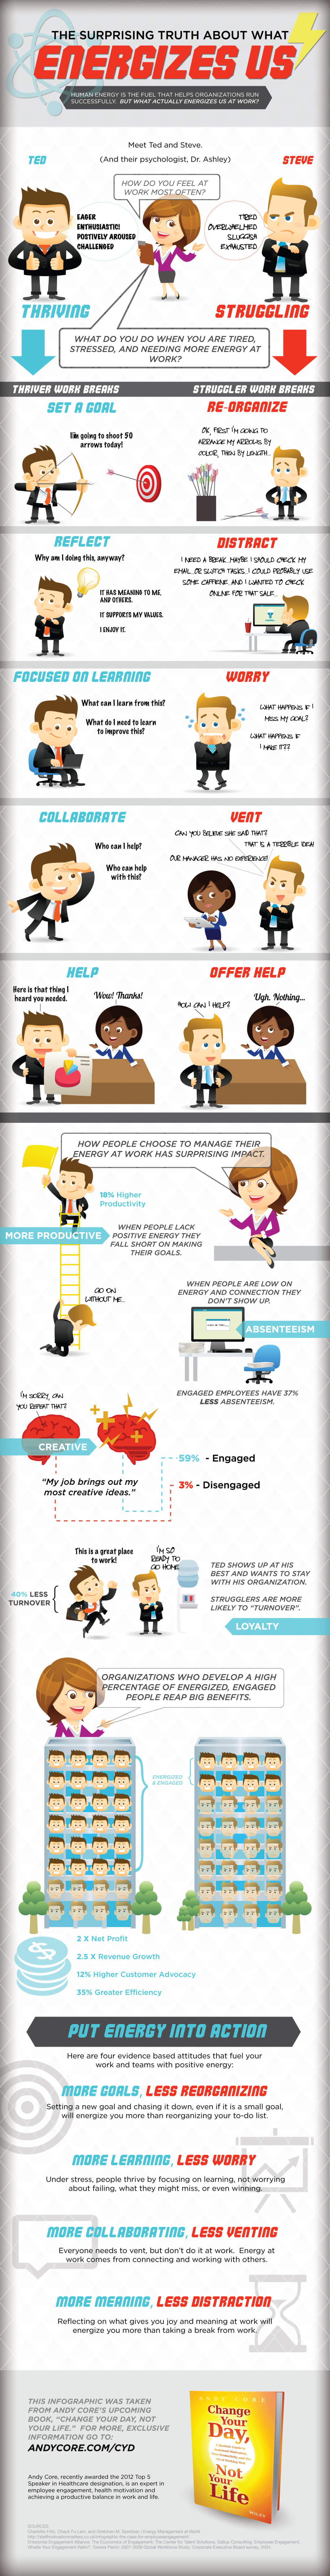 energy-at-work-infographic